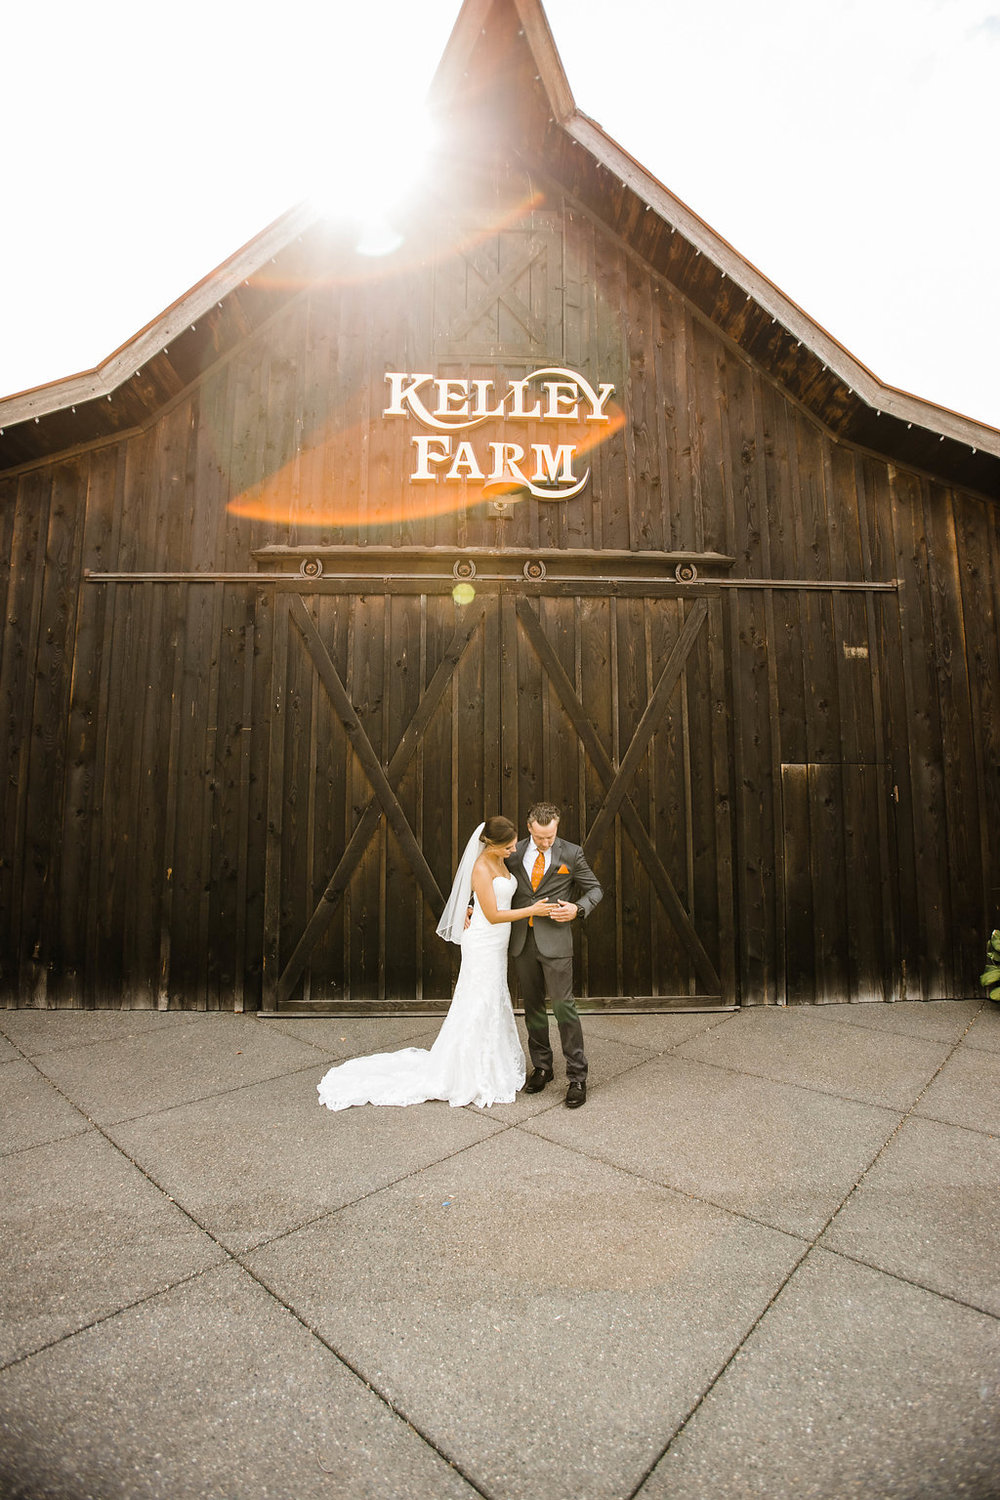 Erin+Tyson_Kelly_Farm_Wedding_Adina_Preston_Weddings_3.JPG